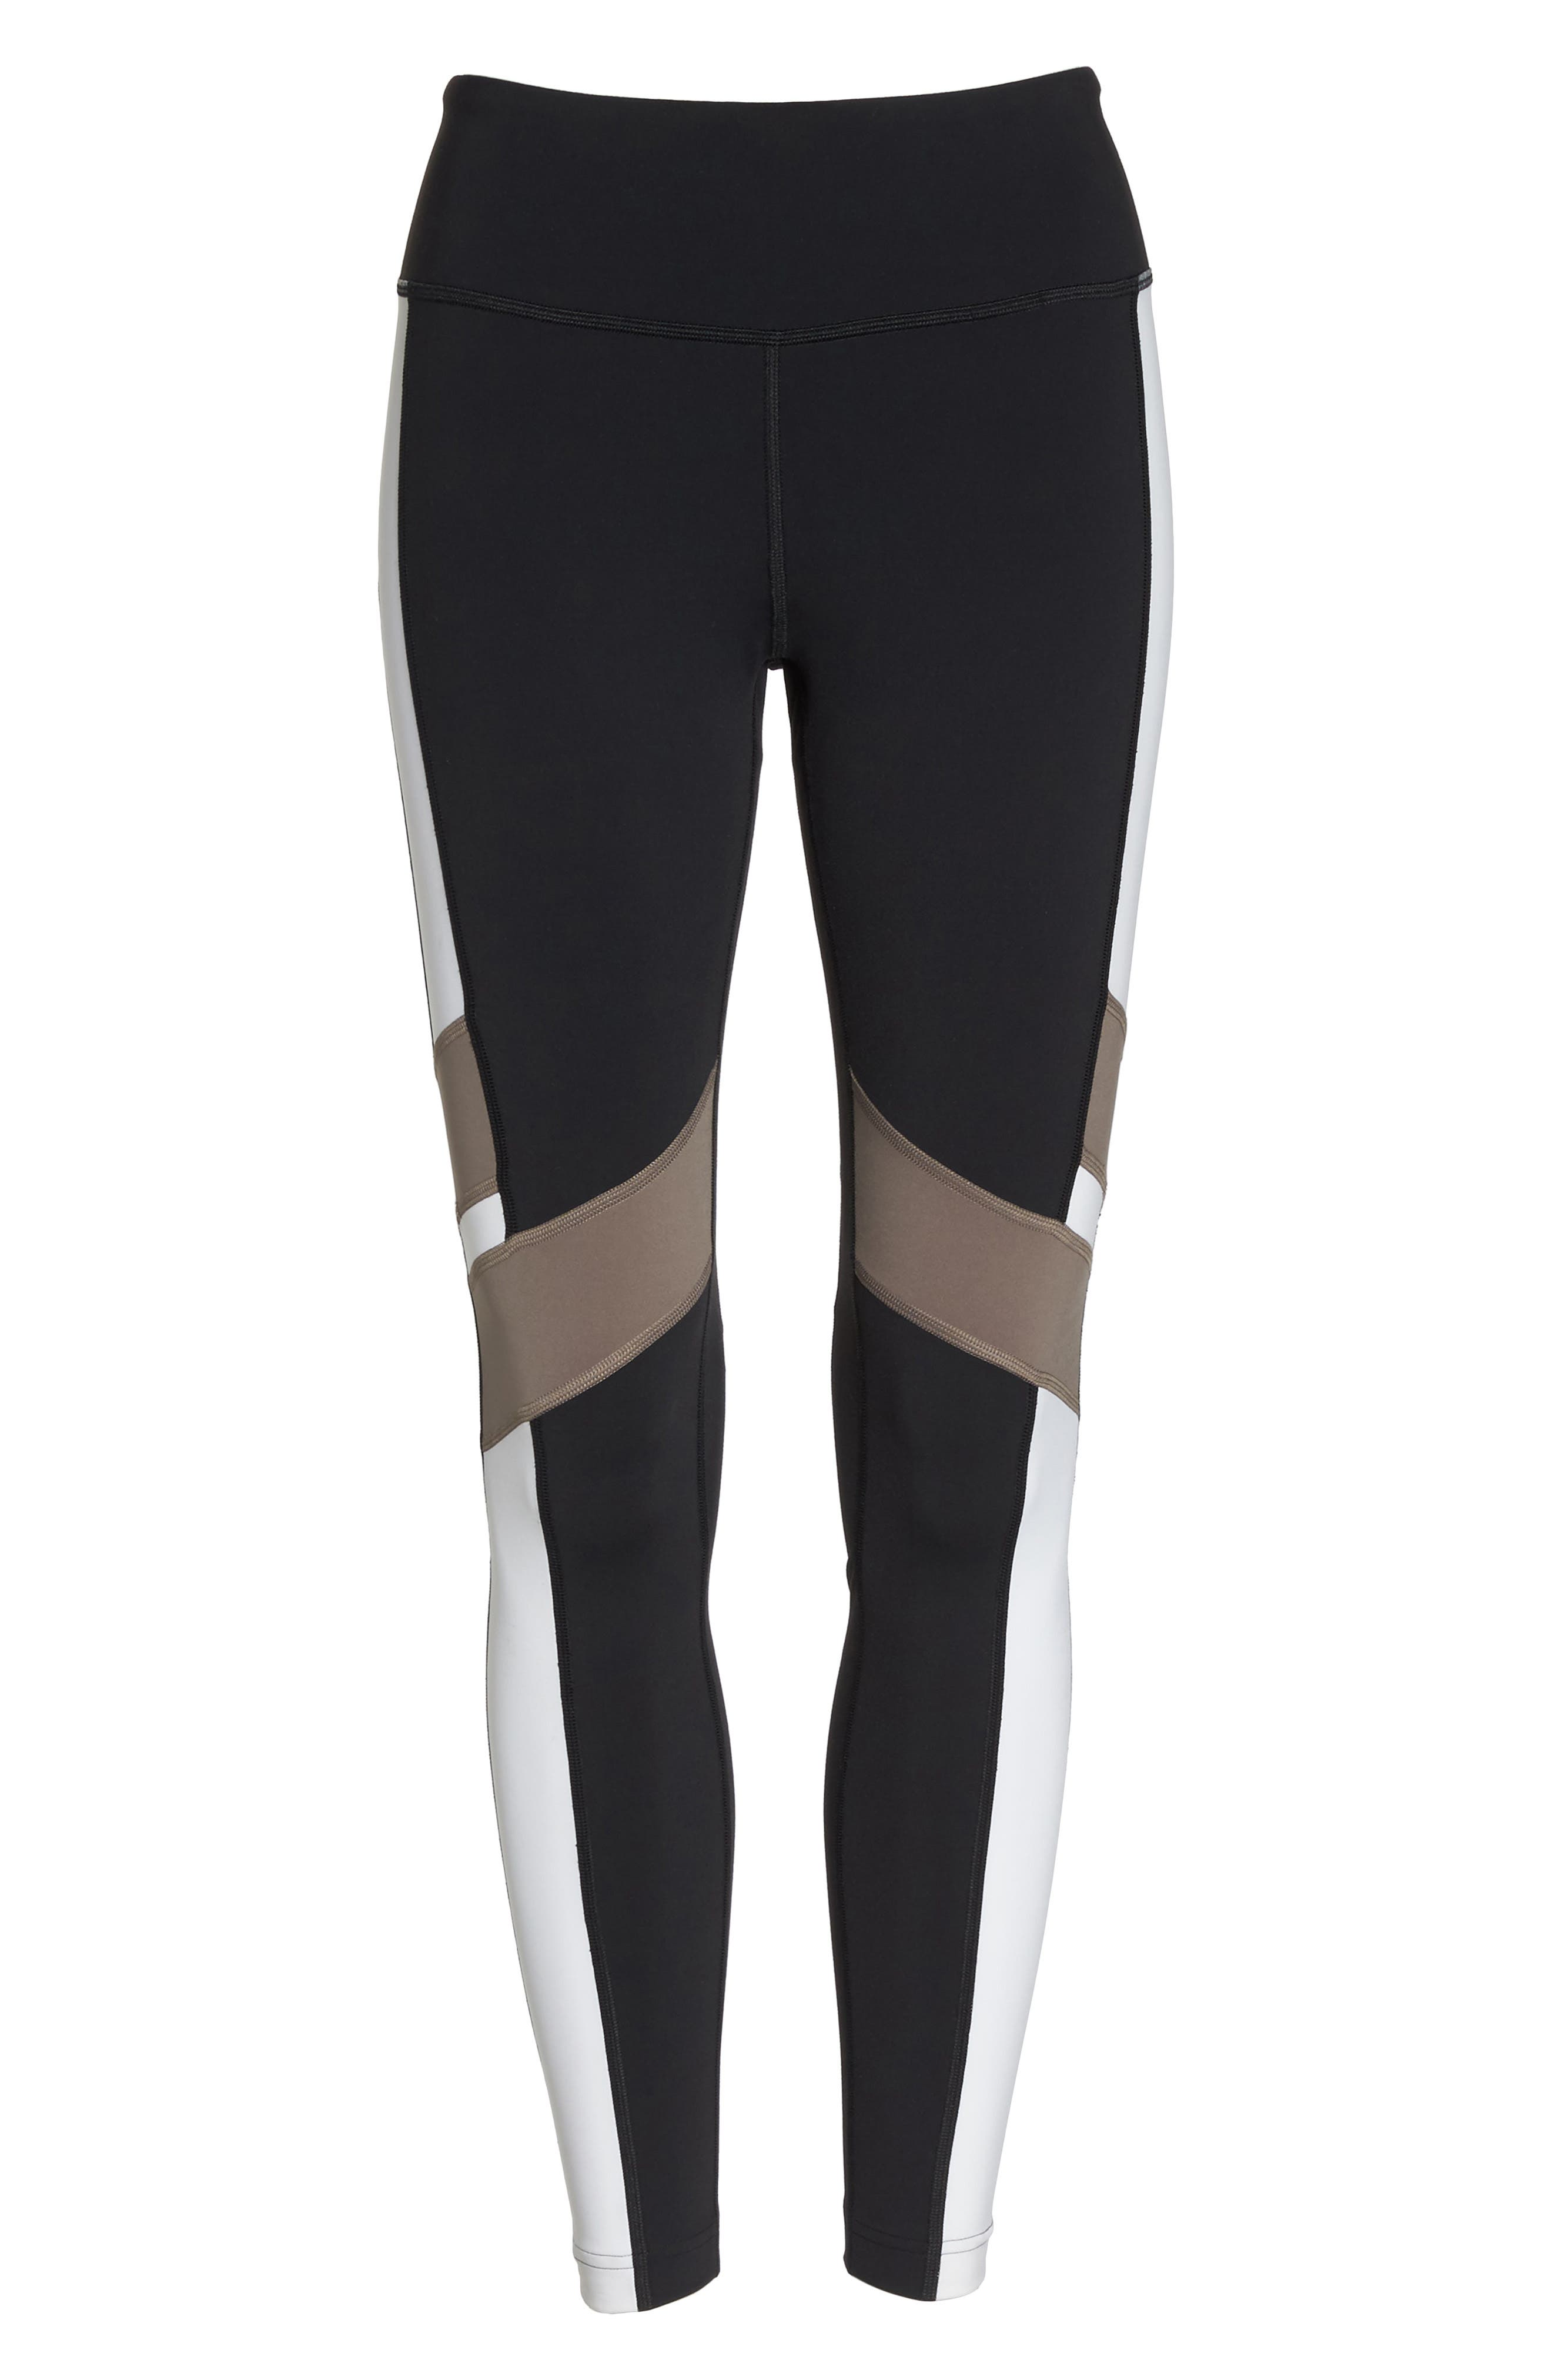 Reebox Lux Tights,                             Alternate thumbnail 7, color,                             Black